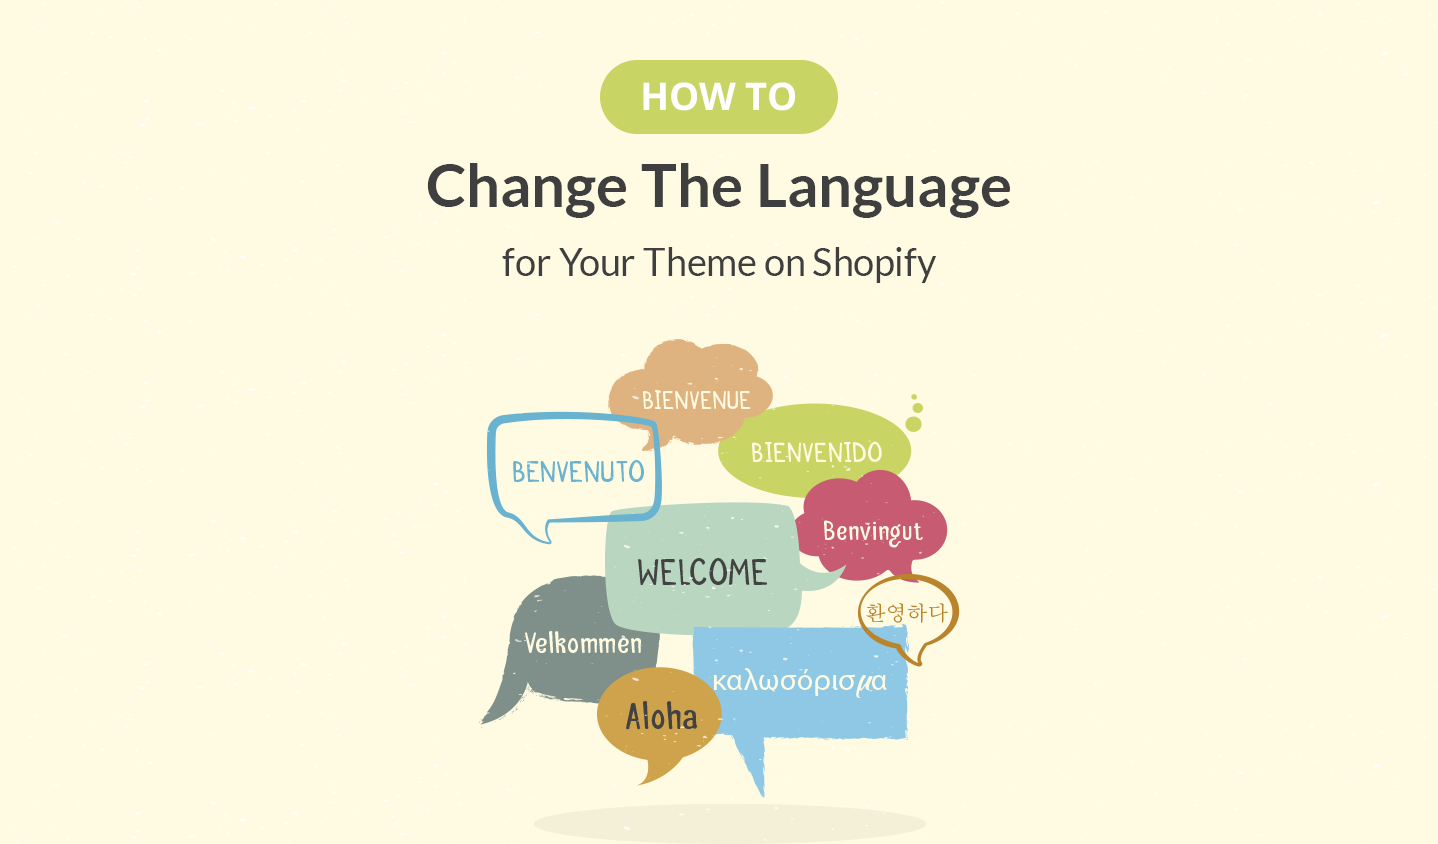 How to Change The Language for Your Theme on Shopify